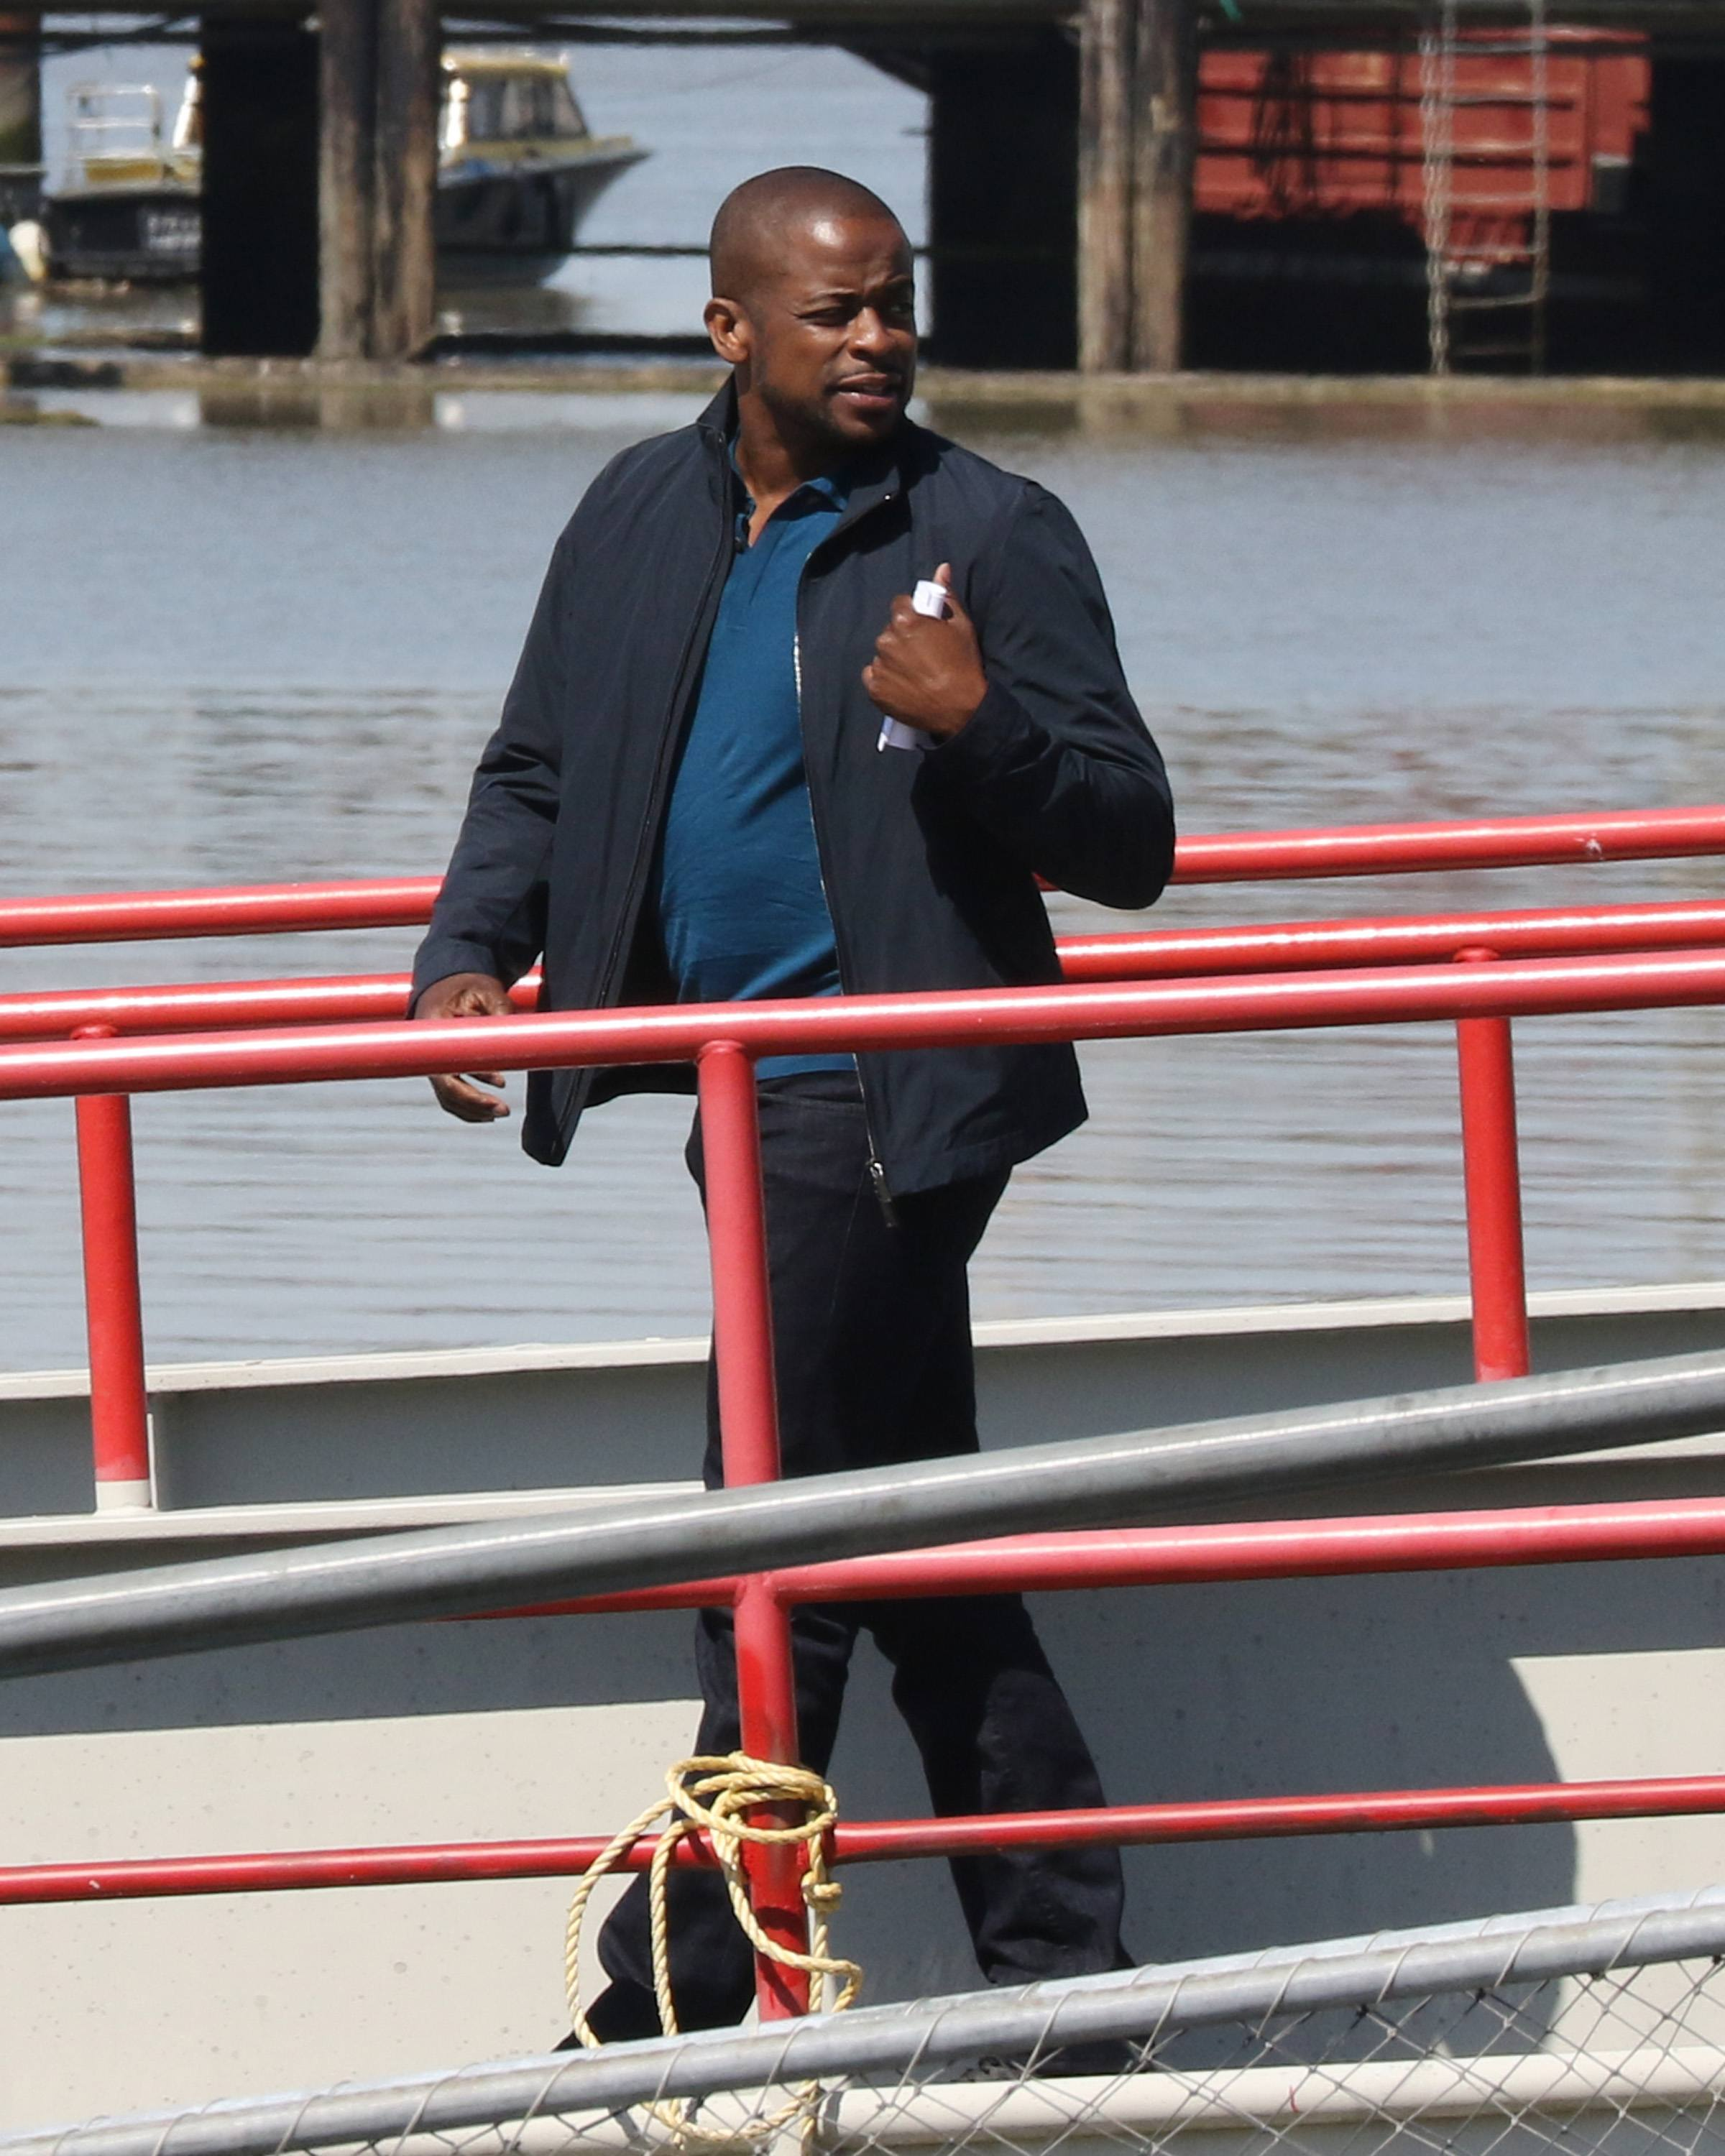 psych the movie filming in vancouver photos daily